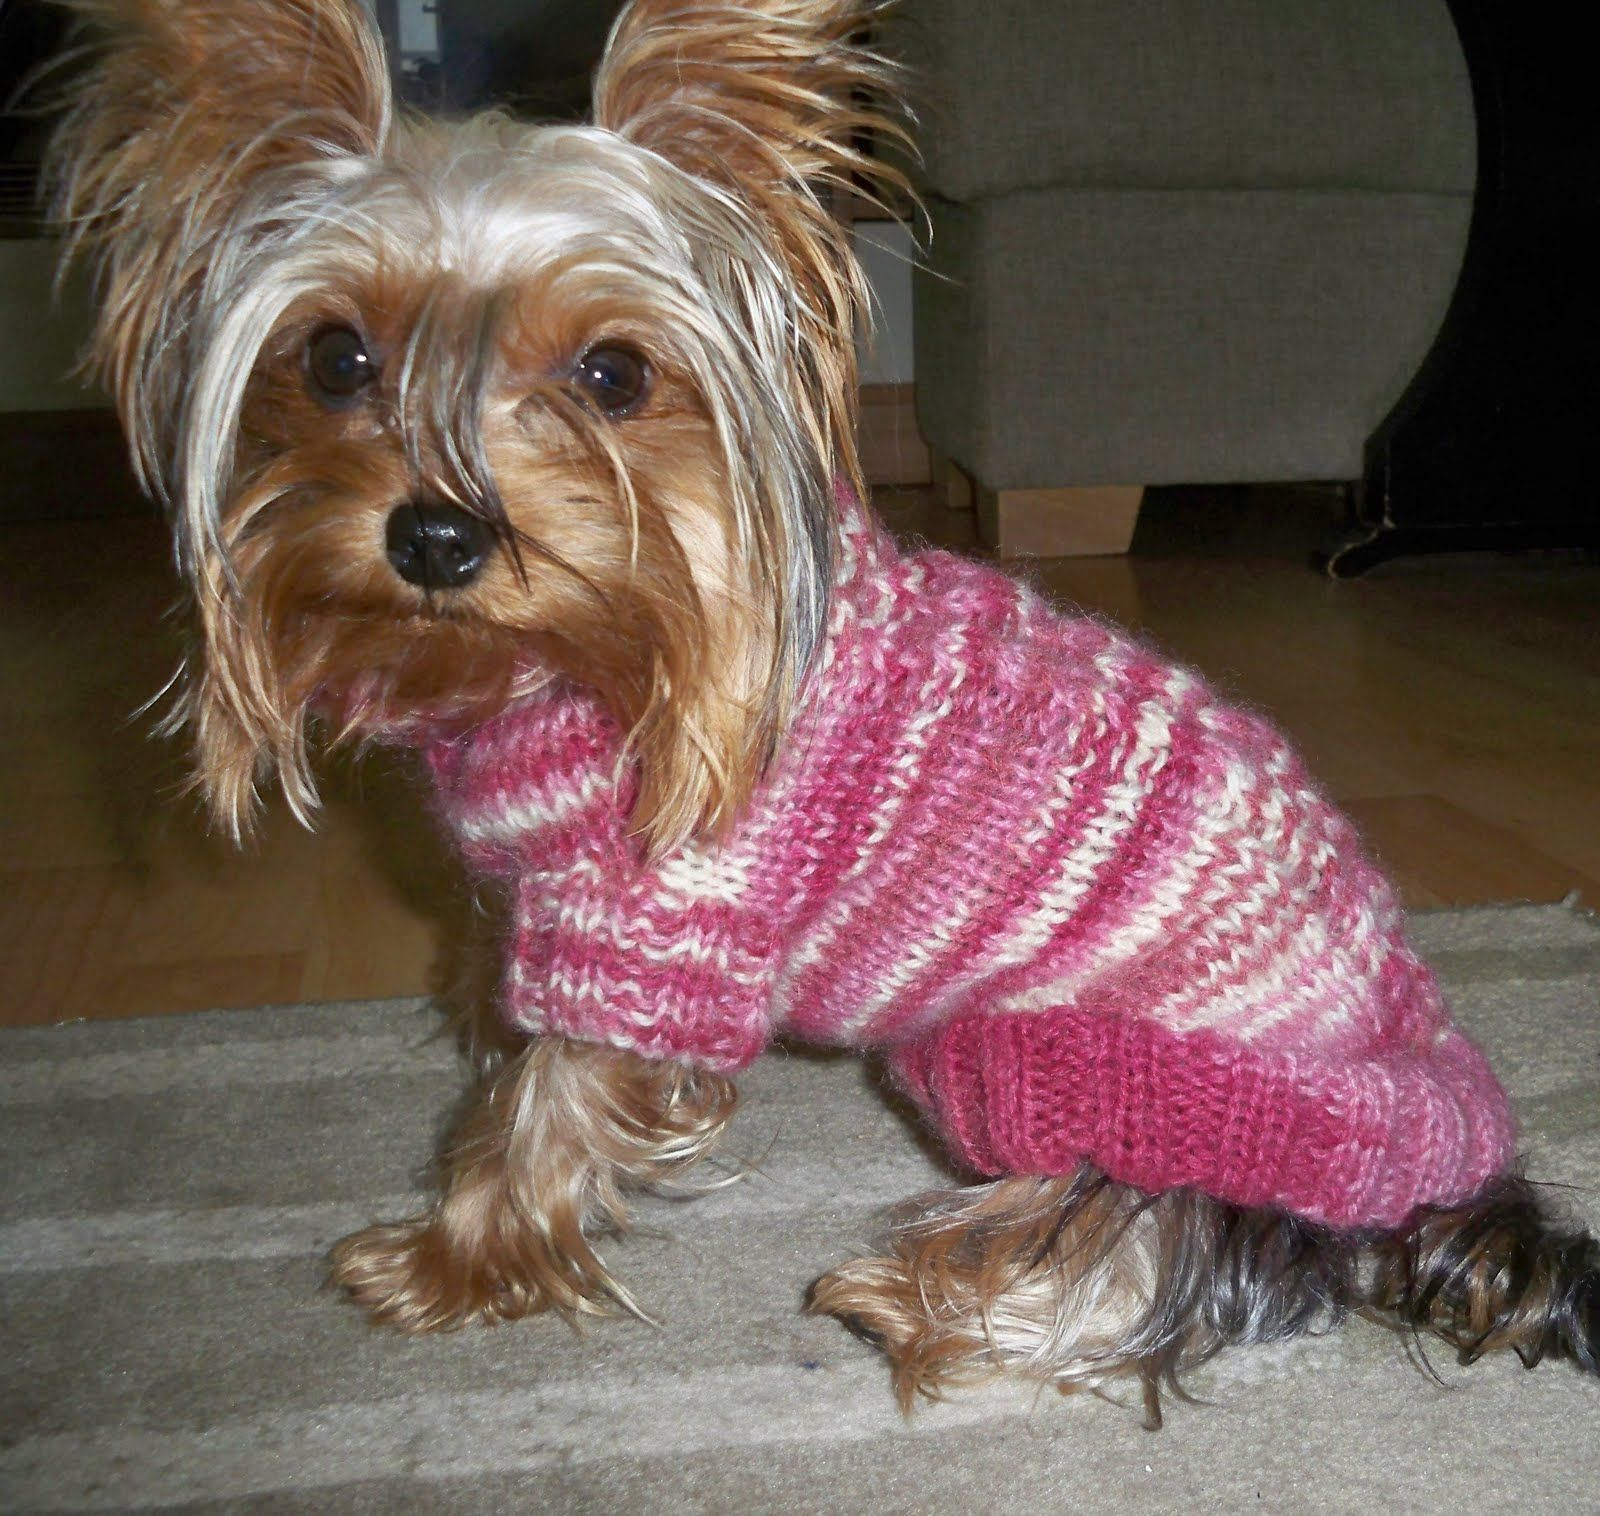 My daughter's friend has a mini Yorkshire terrier, who finds autumn and winter temperatures very disagreeable. Lizzy (the dog) is a very sm... #dogcrochetedsweaters